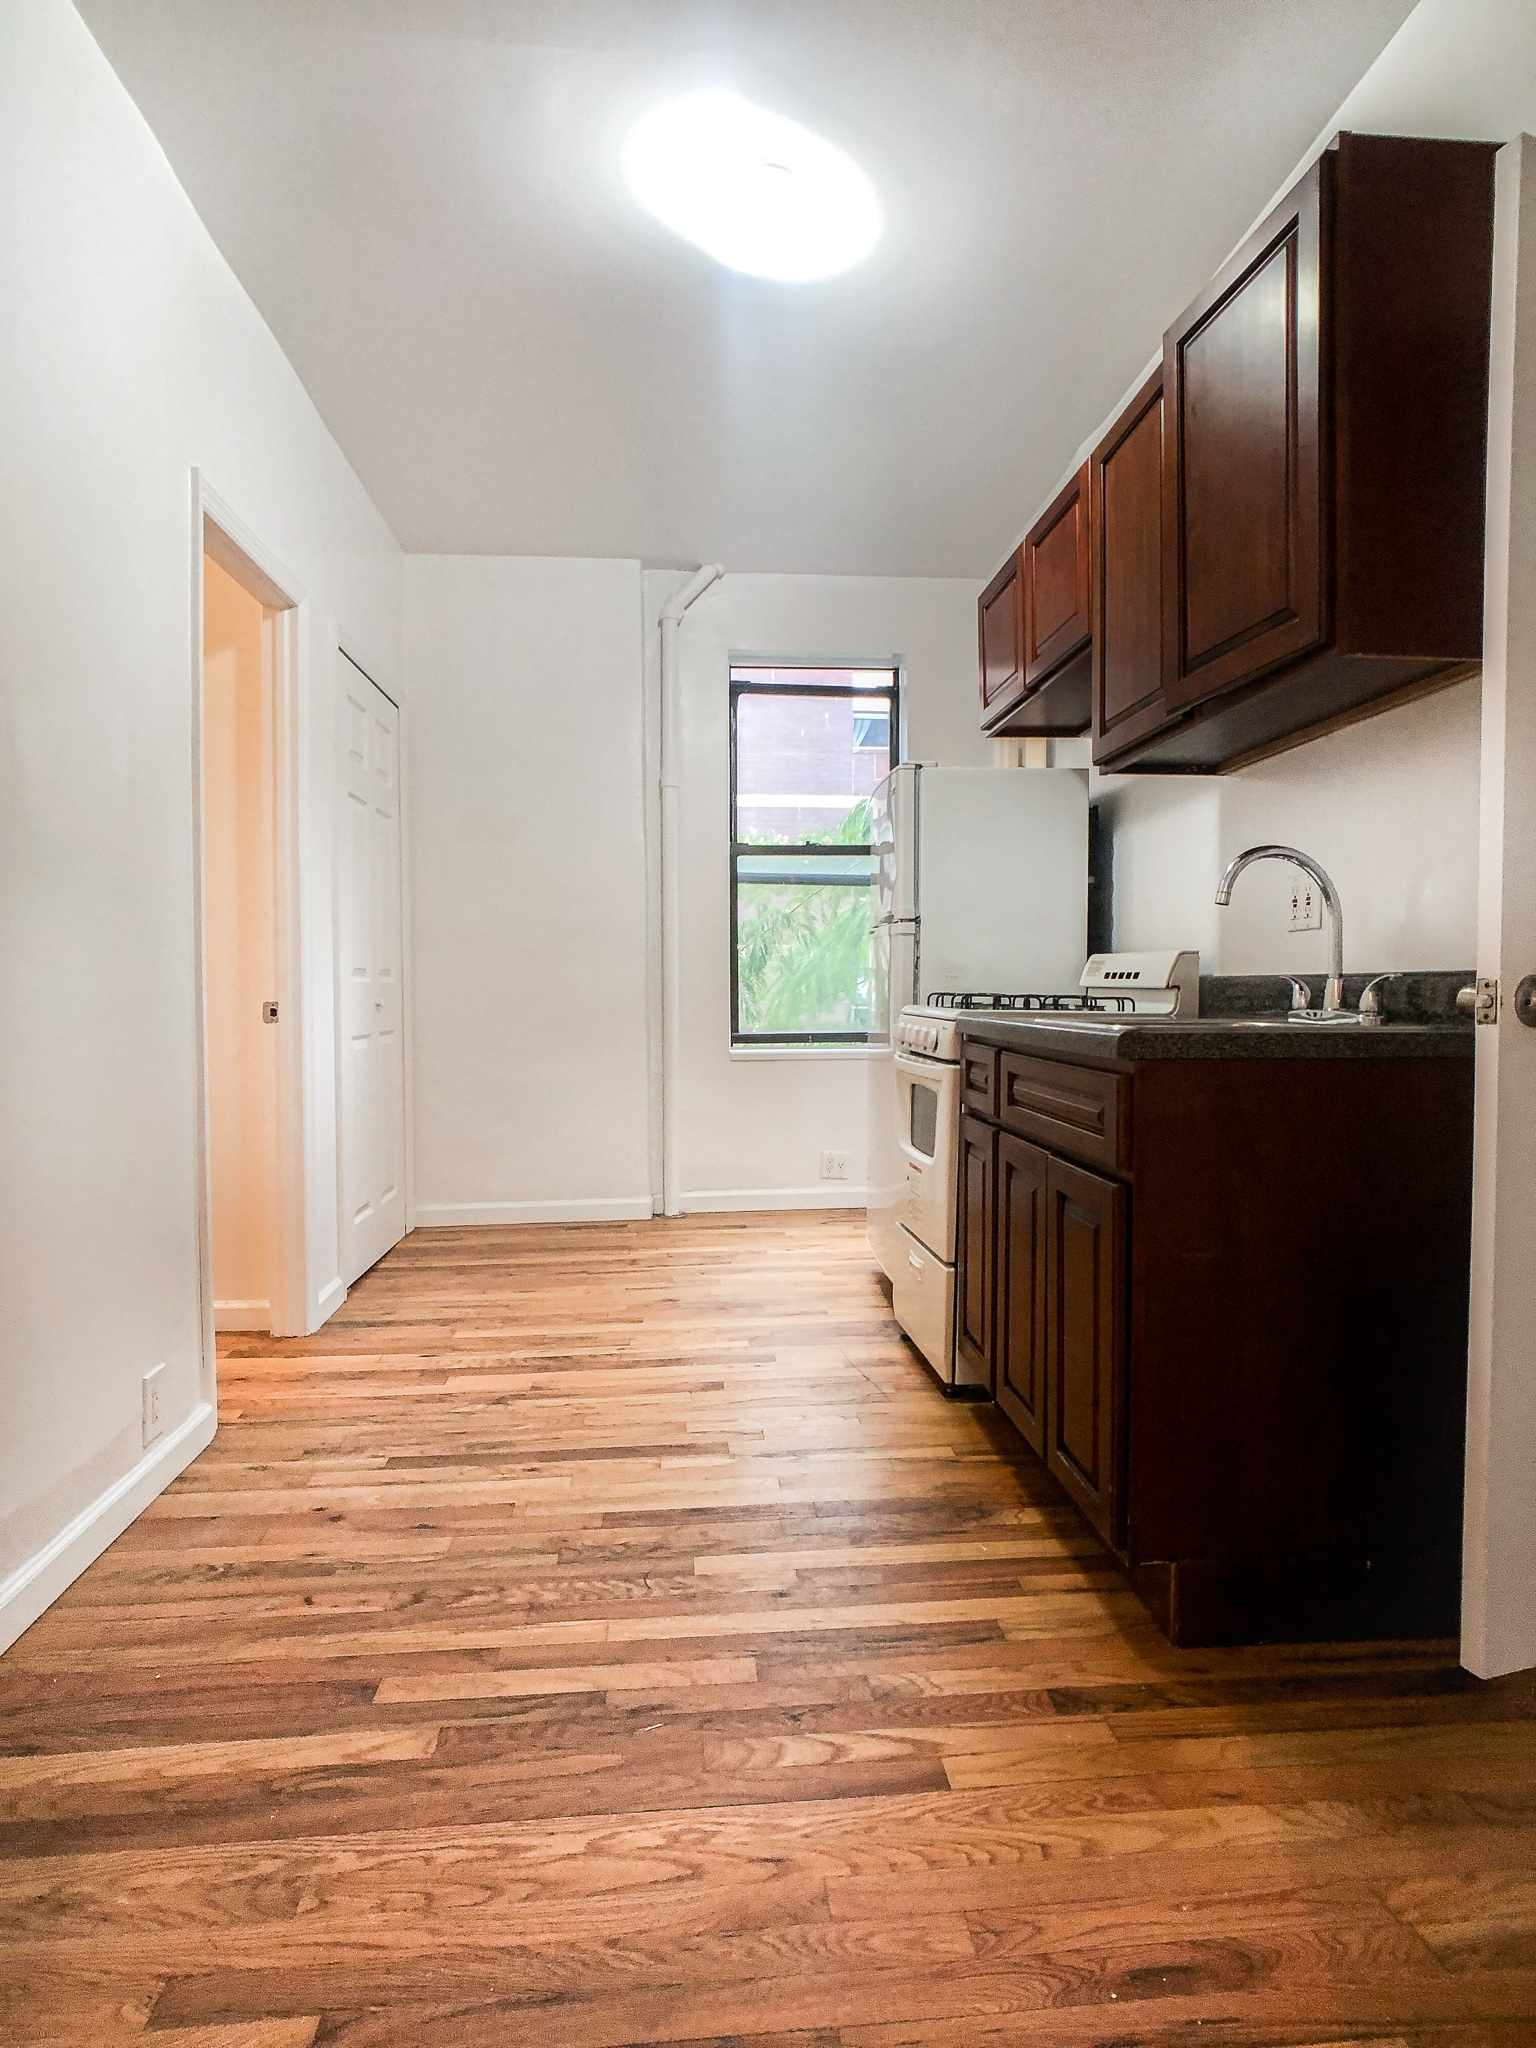 - Renovated TWO Winged Bedroom in East Village!Sunny winged two bedroom home offers separate kitchen, windowed bathroom and spacious bedrooms. Located in a walk up building in east village. Close to public transportation, cafes and shopping.Rent: $2,500 /monthTerms: 12 - 12 MonthsAvailable: Immediate